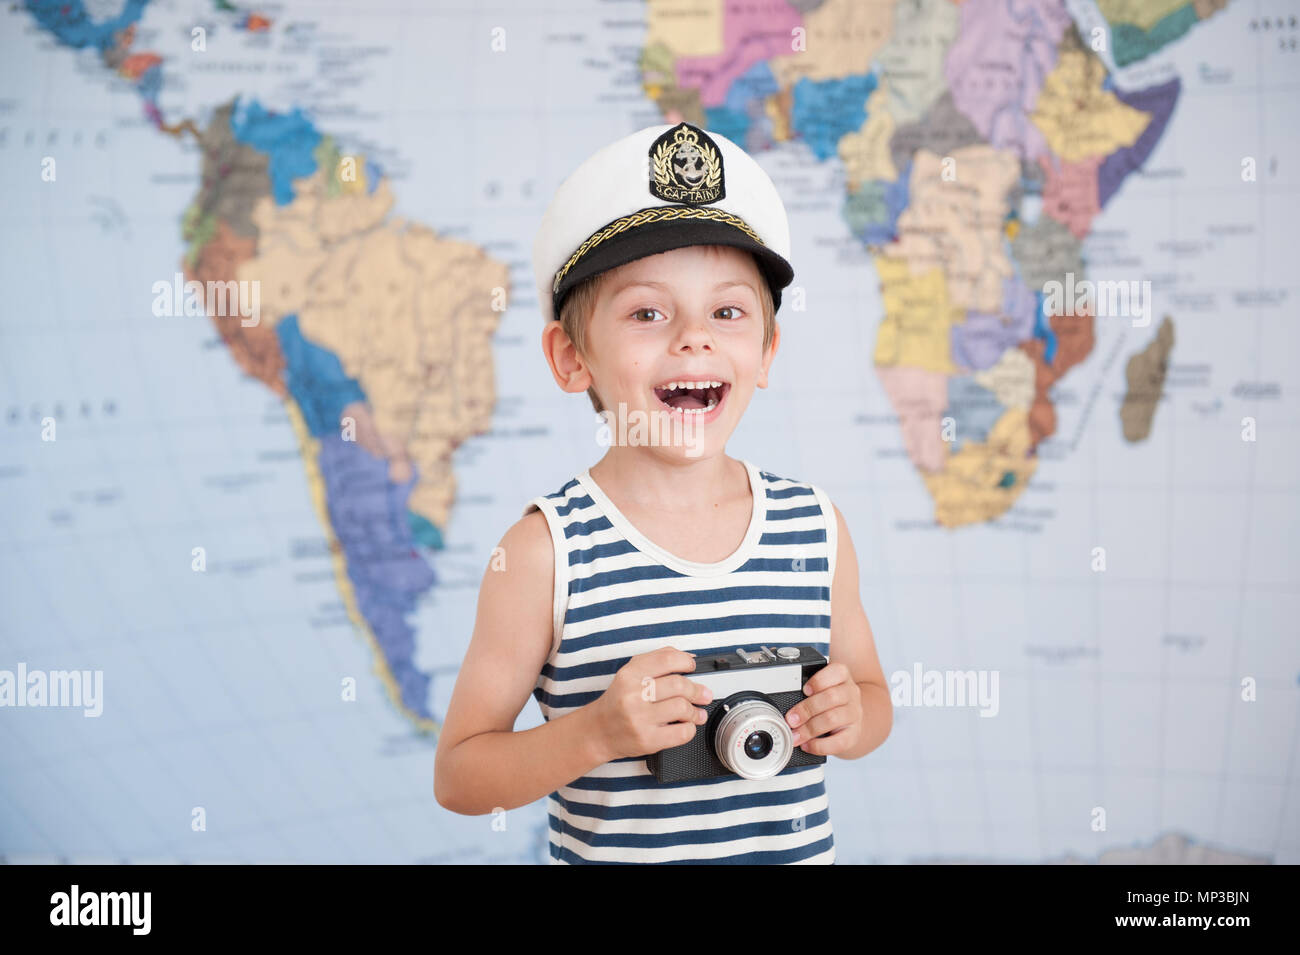 cute laughing boy in captain's hat and vintage film camera